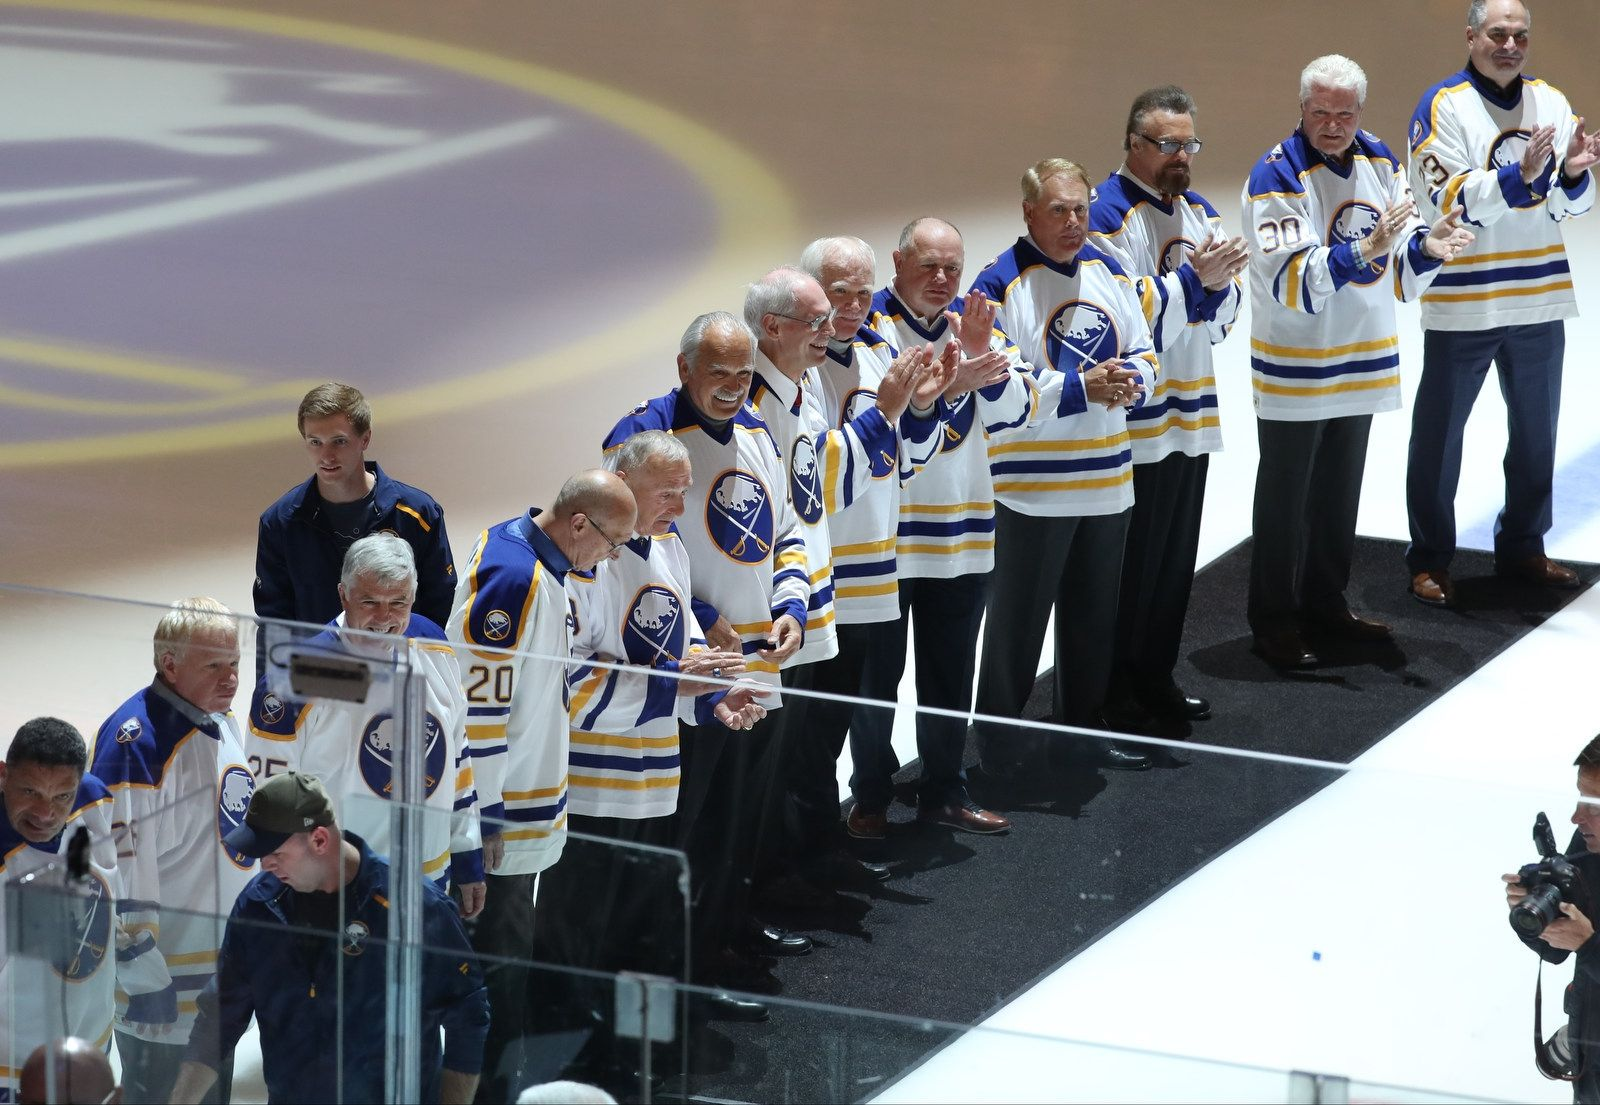 Over 20 alumni helped celebrate the first decade in team history before the start of the game.